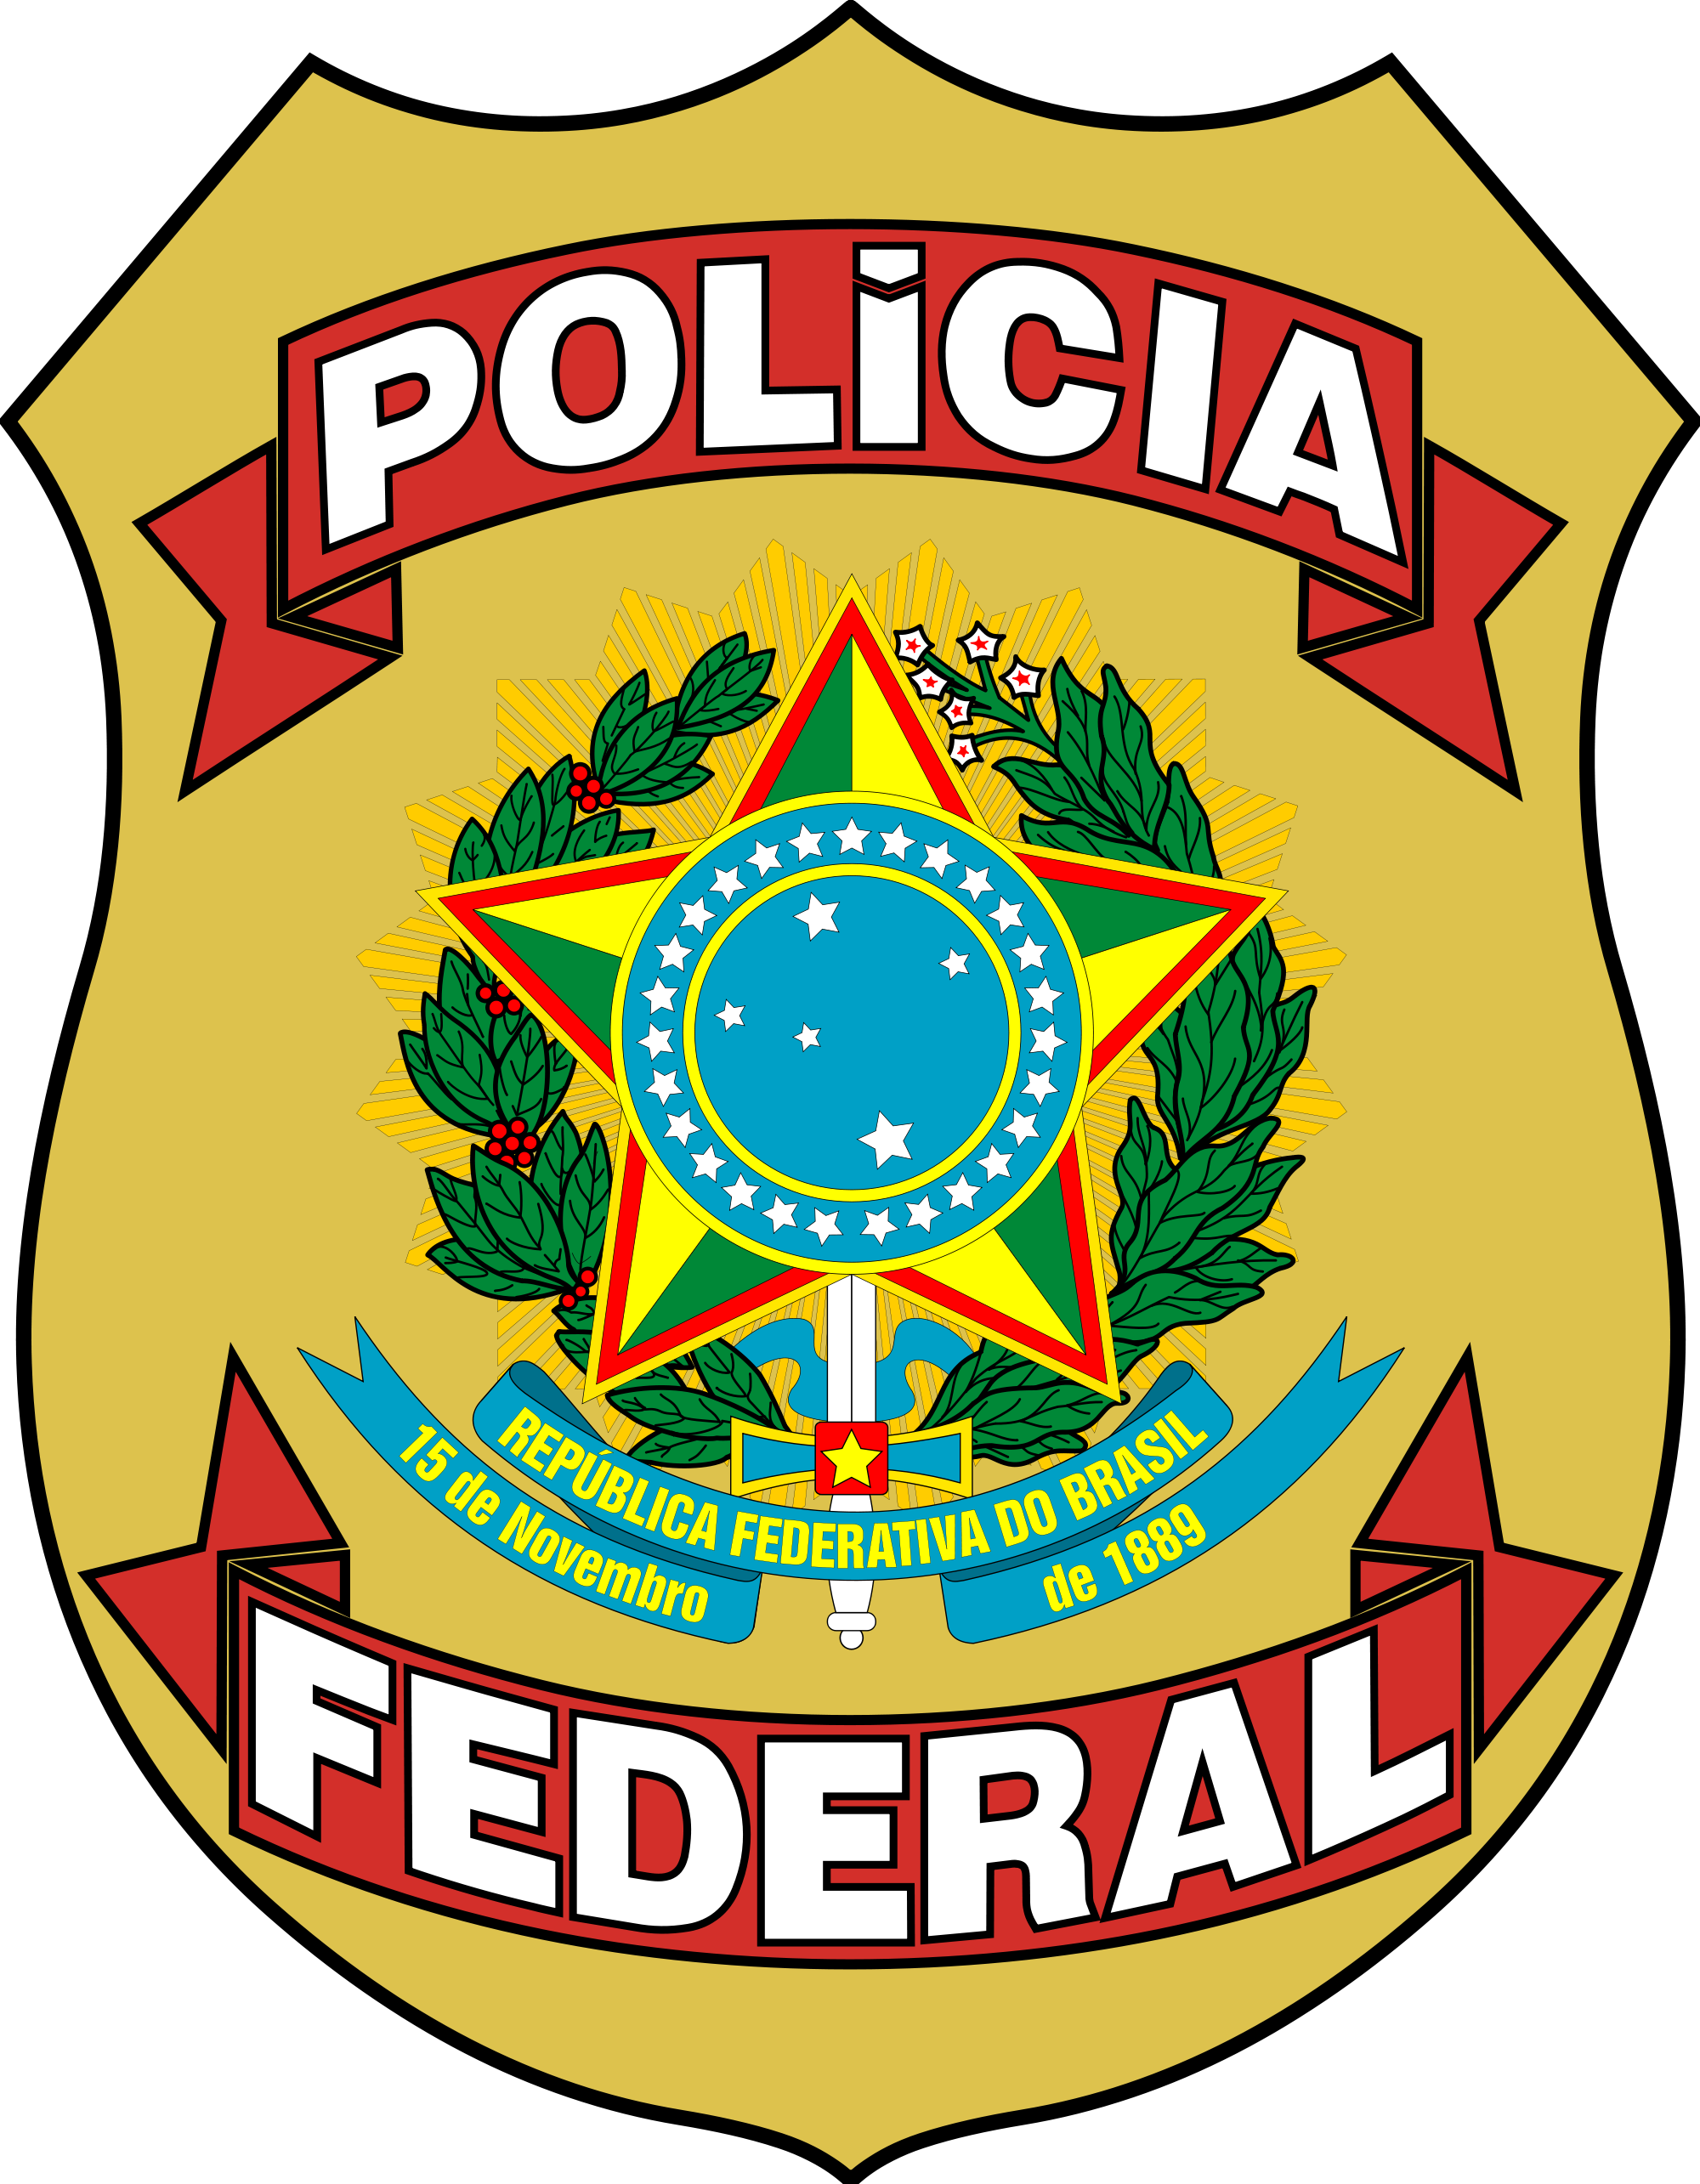 policia federal badge police pinterest federal